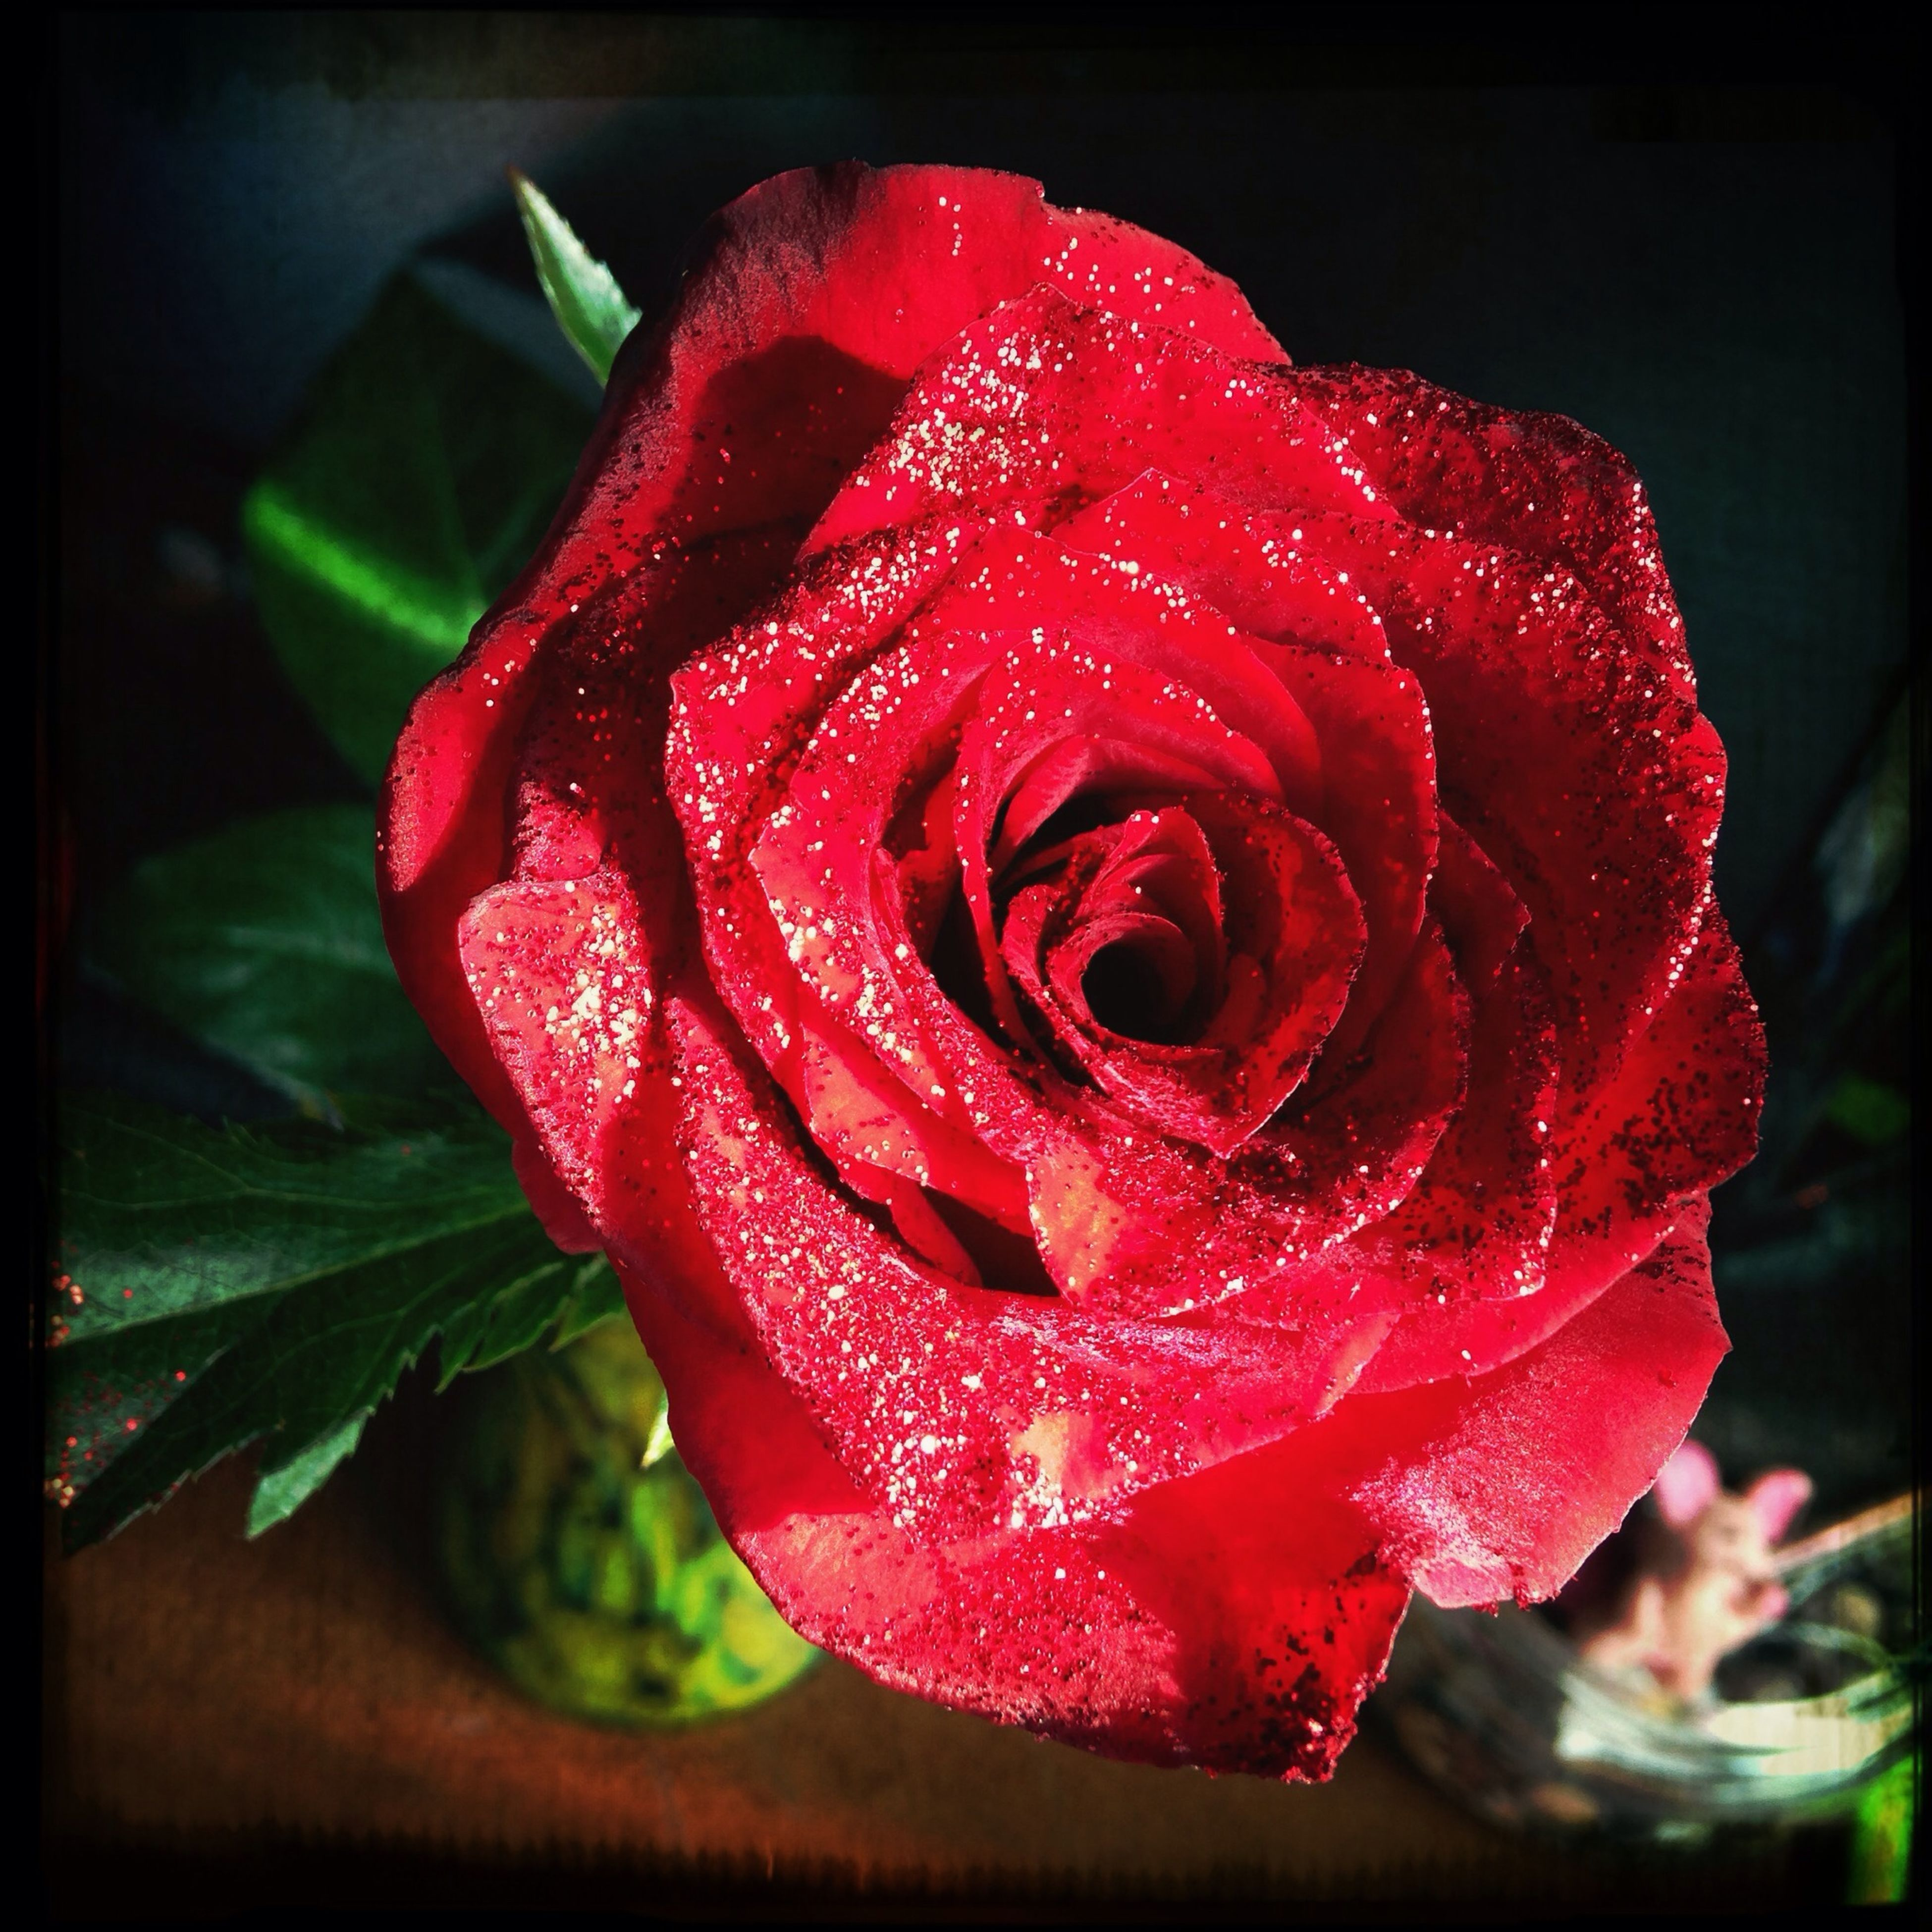 flower, petal, flower head, freshness, rose - flower, fragility, drop, close-up, single flower, beauty in nature, wet, single rose, growth, red, rose, blooming, water, nature, dew, focus on foreground